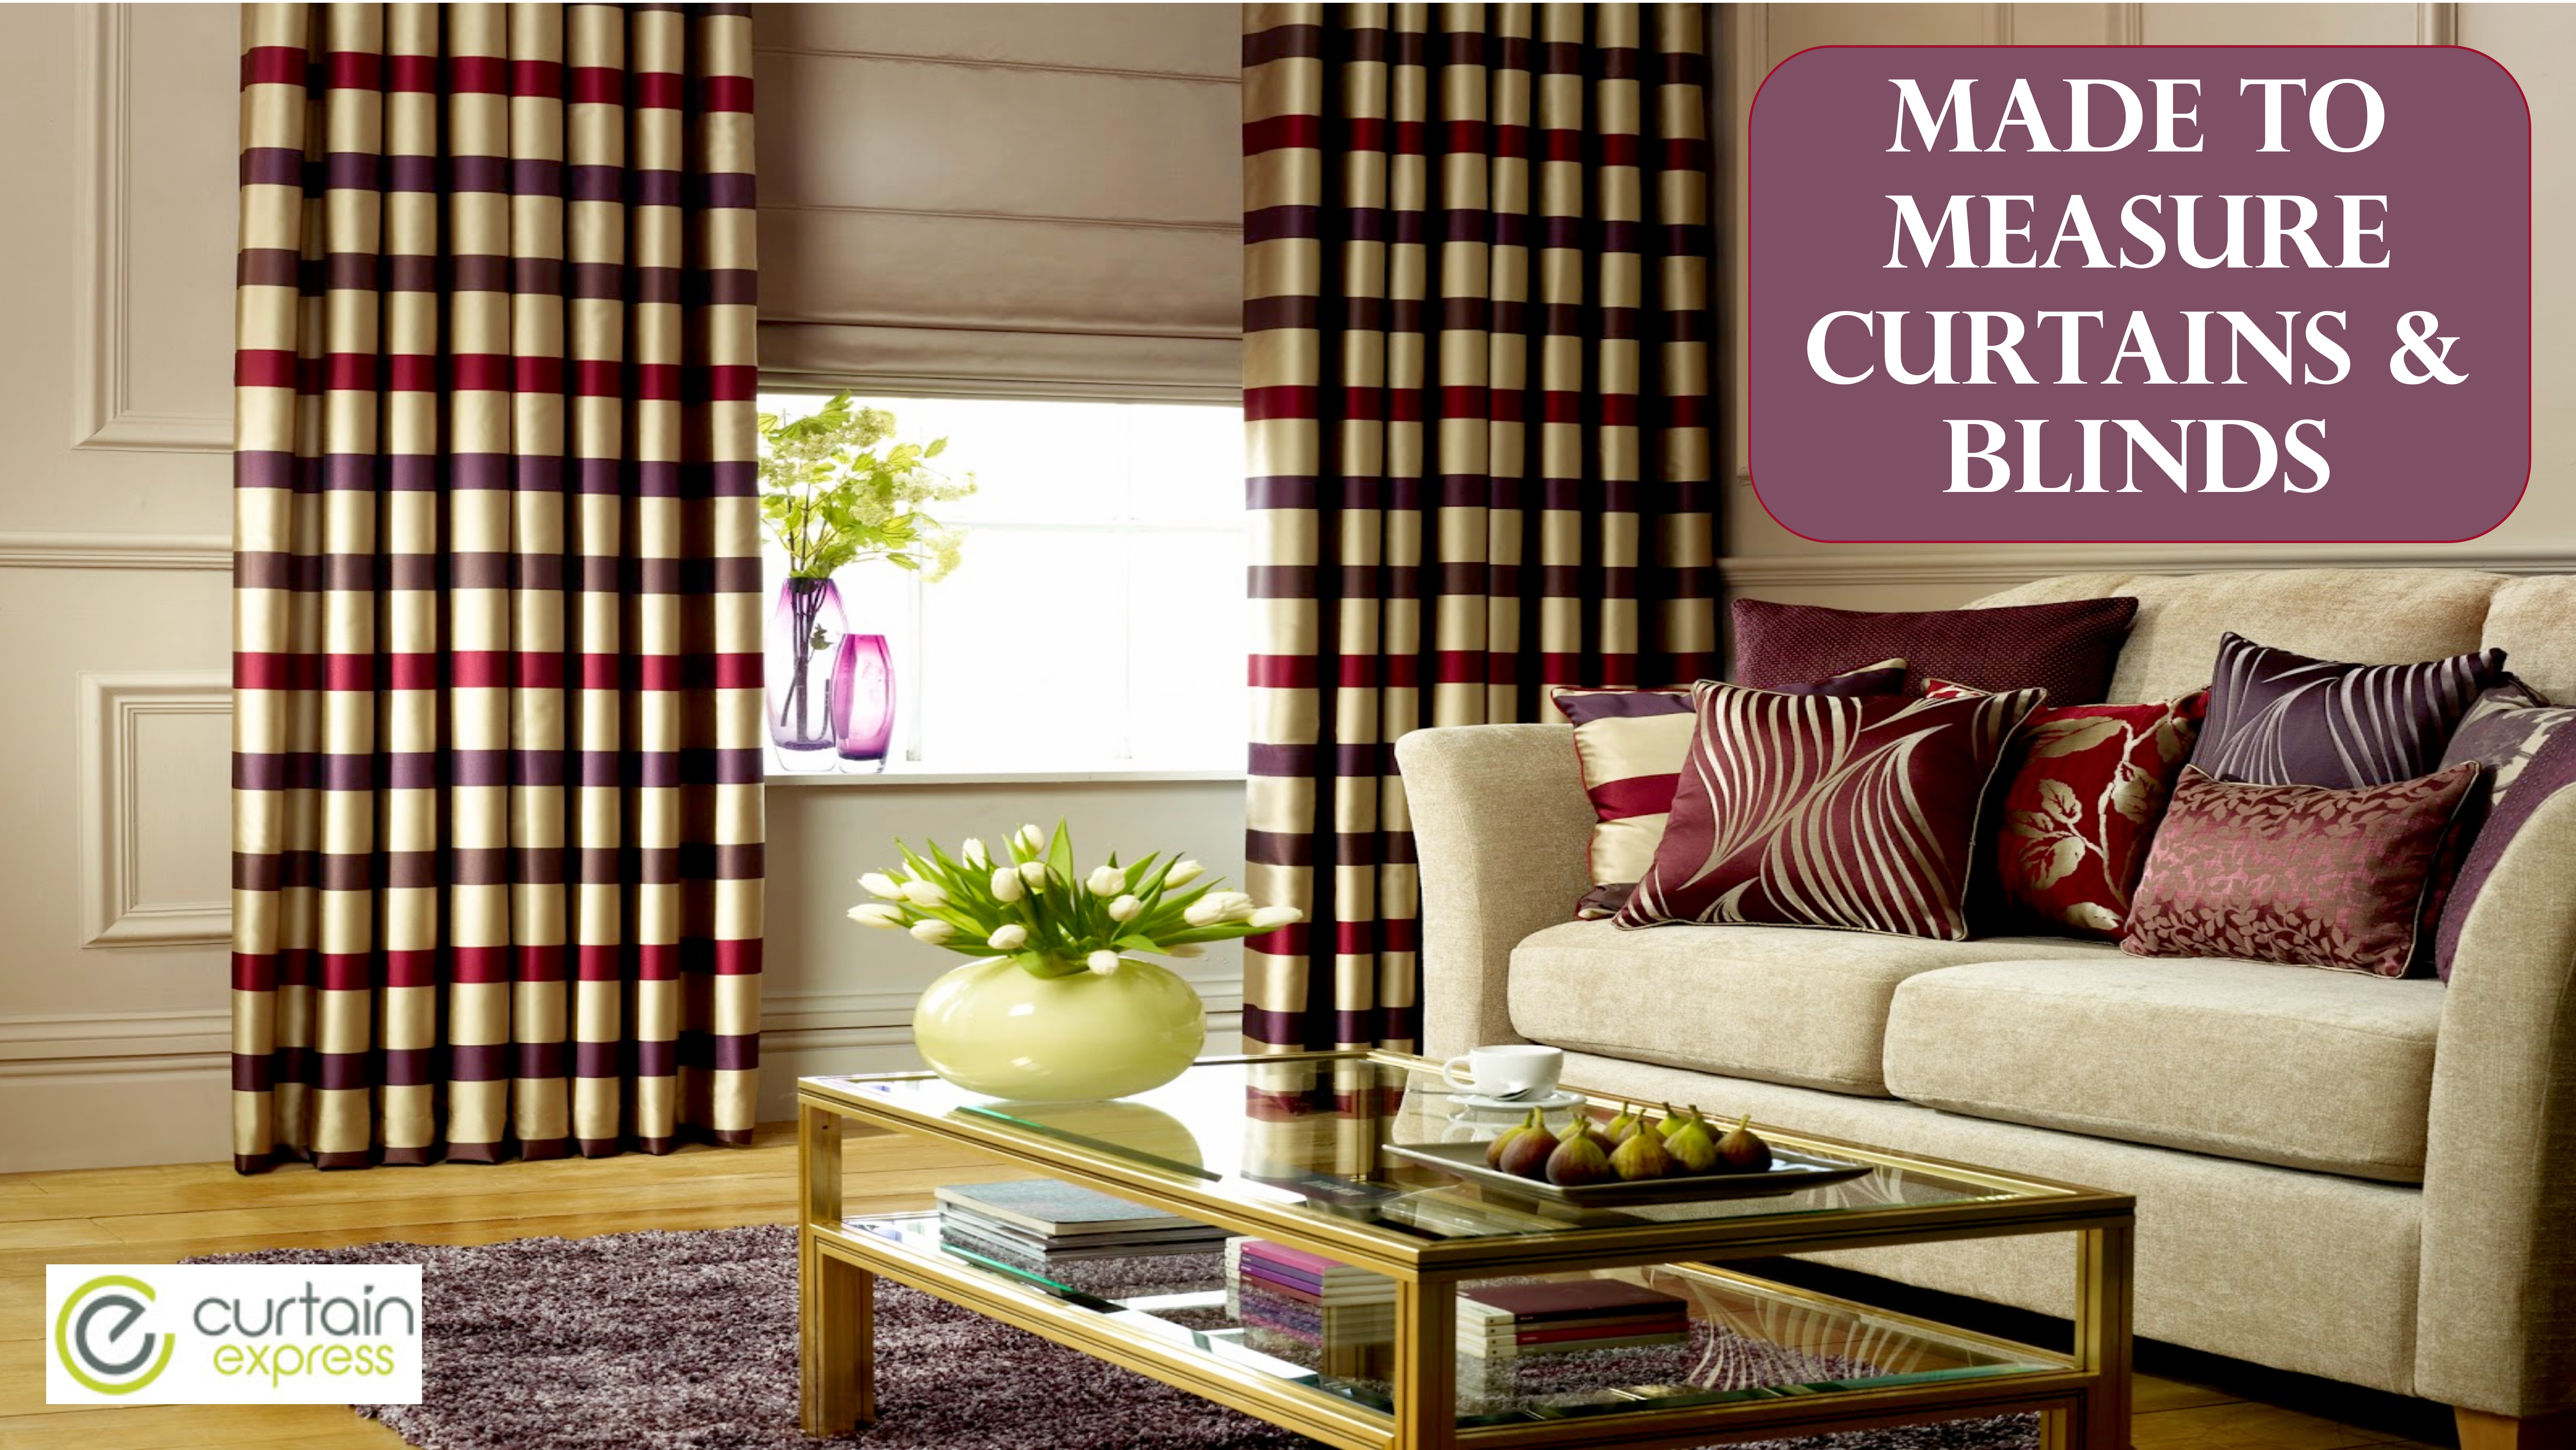 Made To Measure Curtains & Blinds